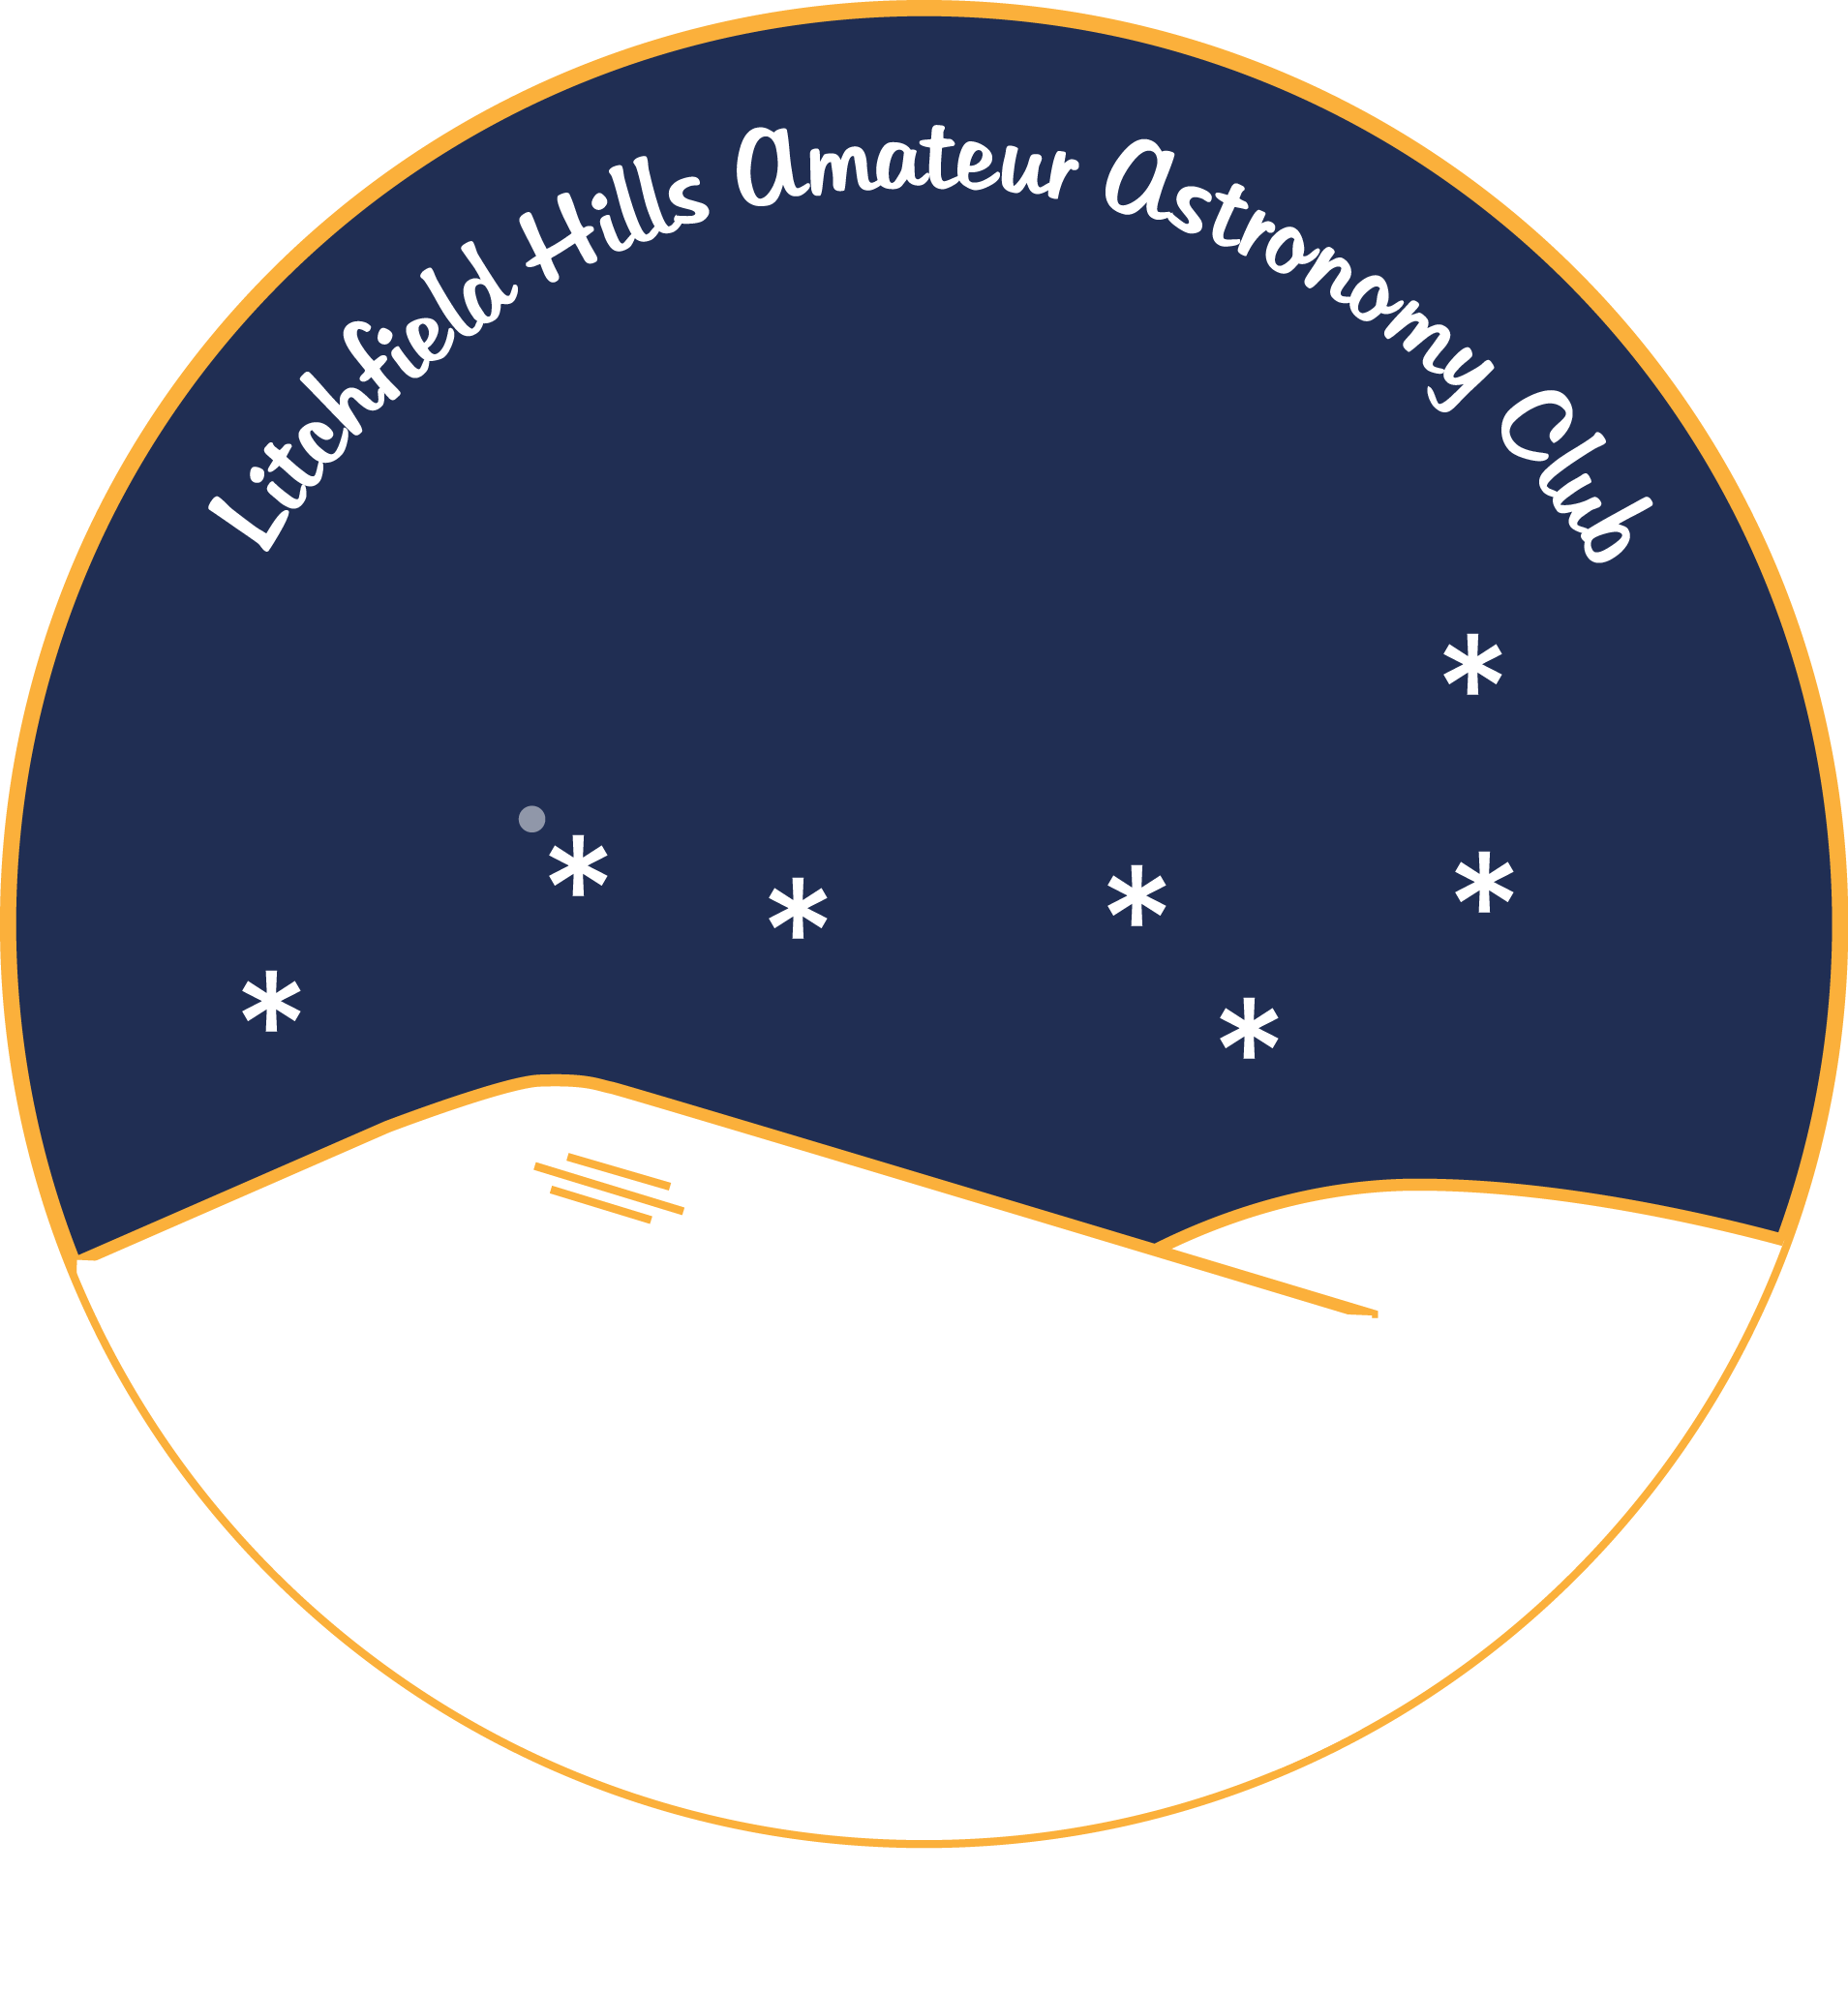 Litchfield Hills Amateur Astronomy Club Logo